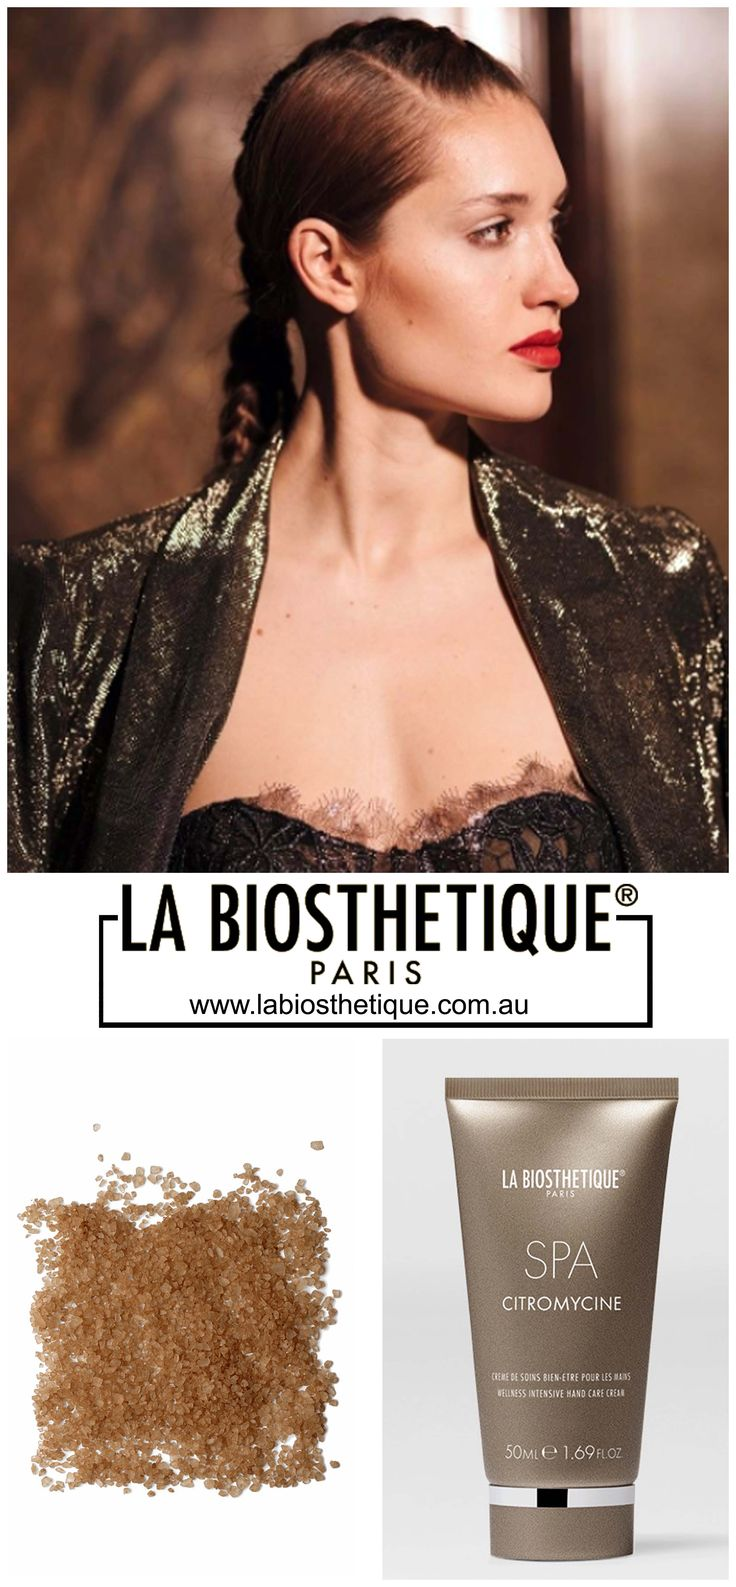 For silky soft skin: Spa Citromycine, the sensuously scented hand cream – specially created for LA BIOSTHETIQUE by the master of scent essences, Geza Schön │Skin care tips │Body care │Skin Care │Beauty Tips │Beauty Secrets │Skin Care Products │Natural Skin Care │Products  #Skincaretips #Skincare #Bodycare #Beautytips #Beautysecrets #Organicskincare #Skincareproducts #Naturalskincare #Products